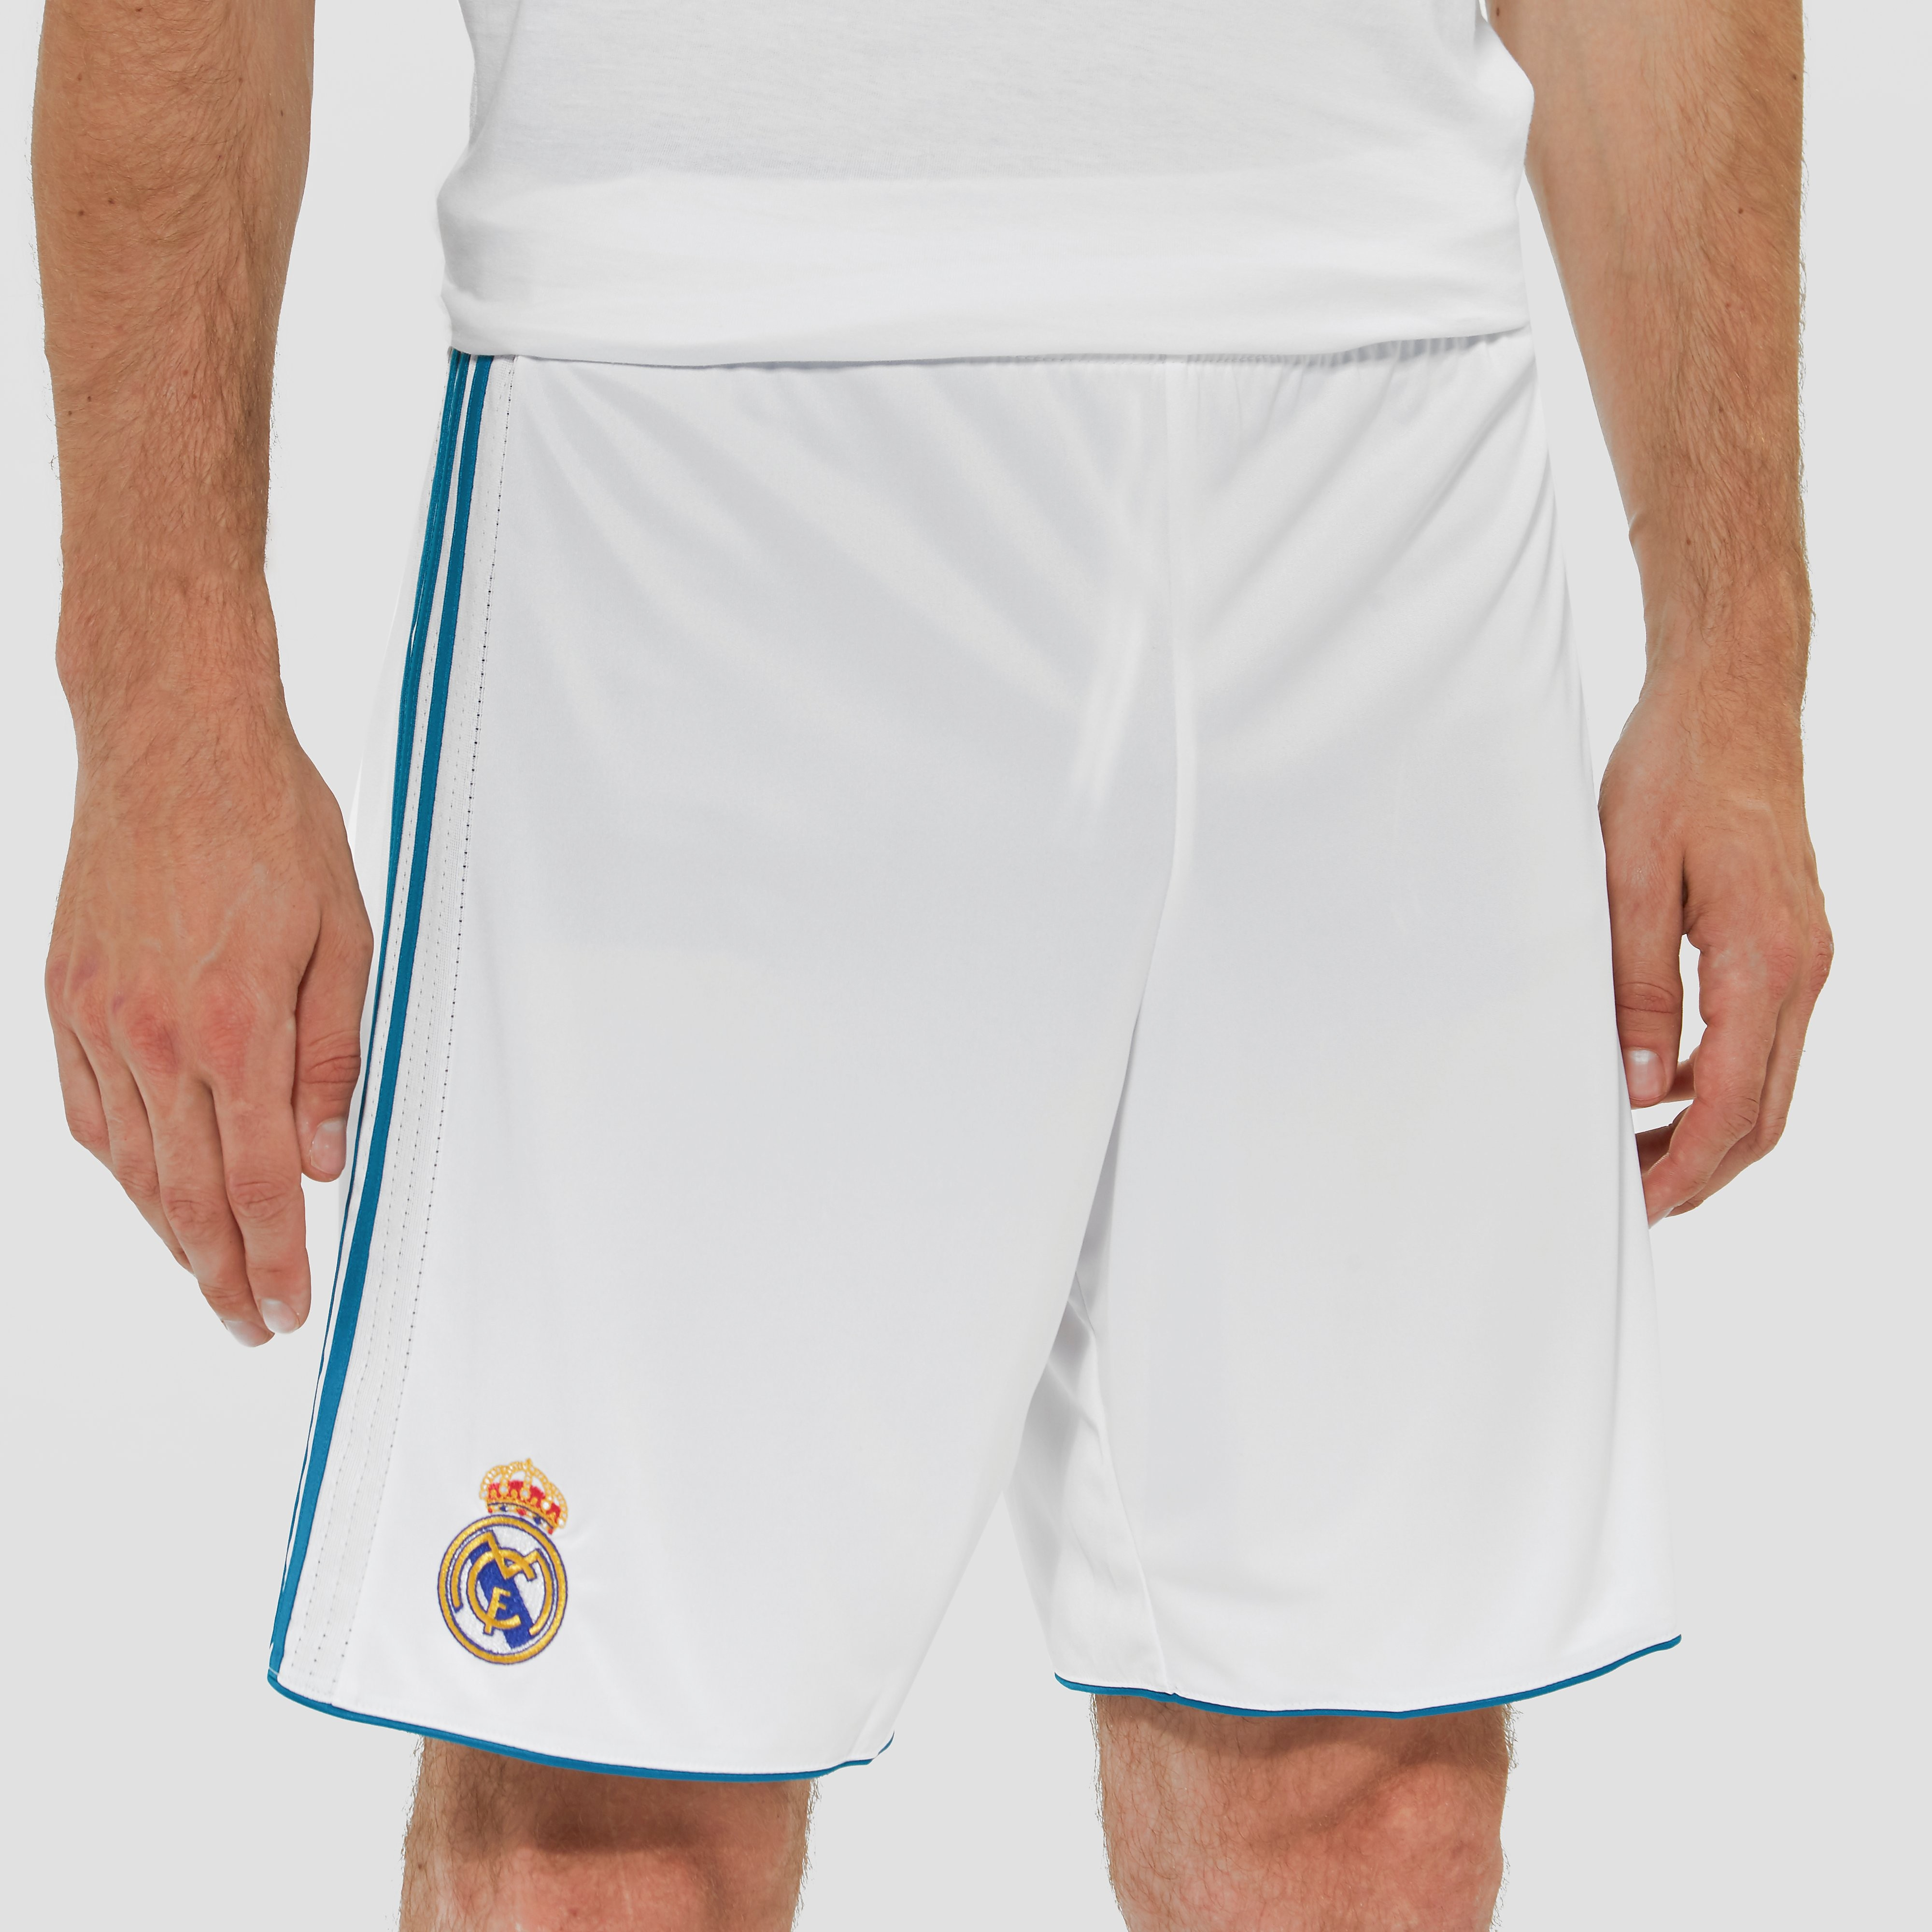 ADIDAS REAL MADRID THUISSHORT 17/18 WIT/TURQOISE HEREN